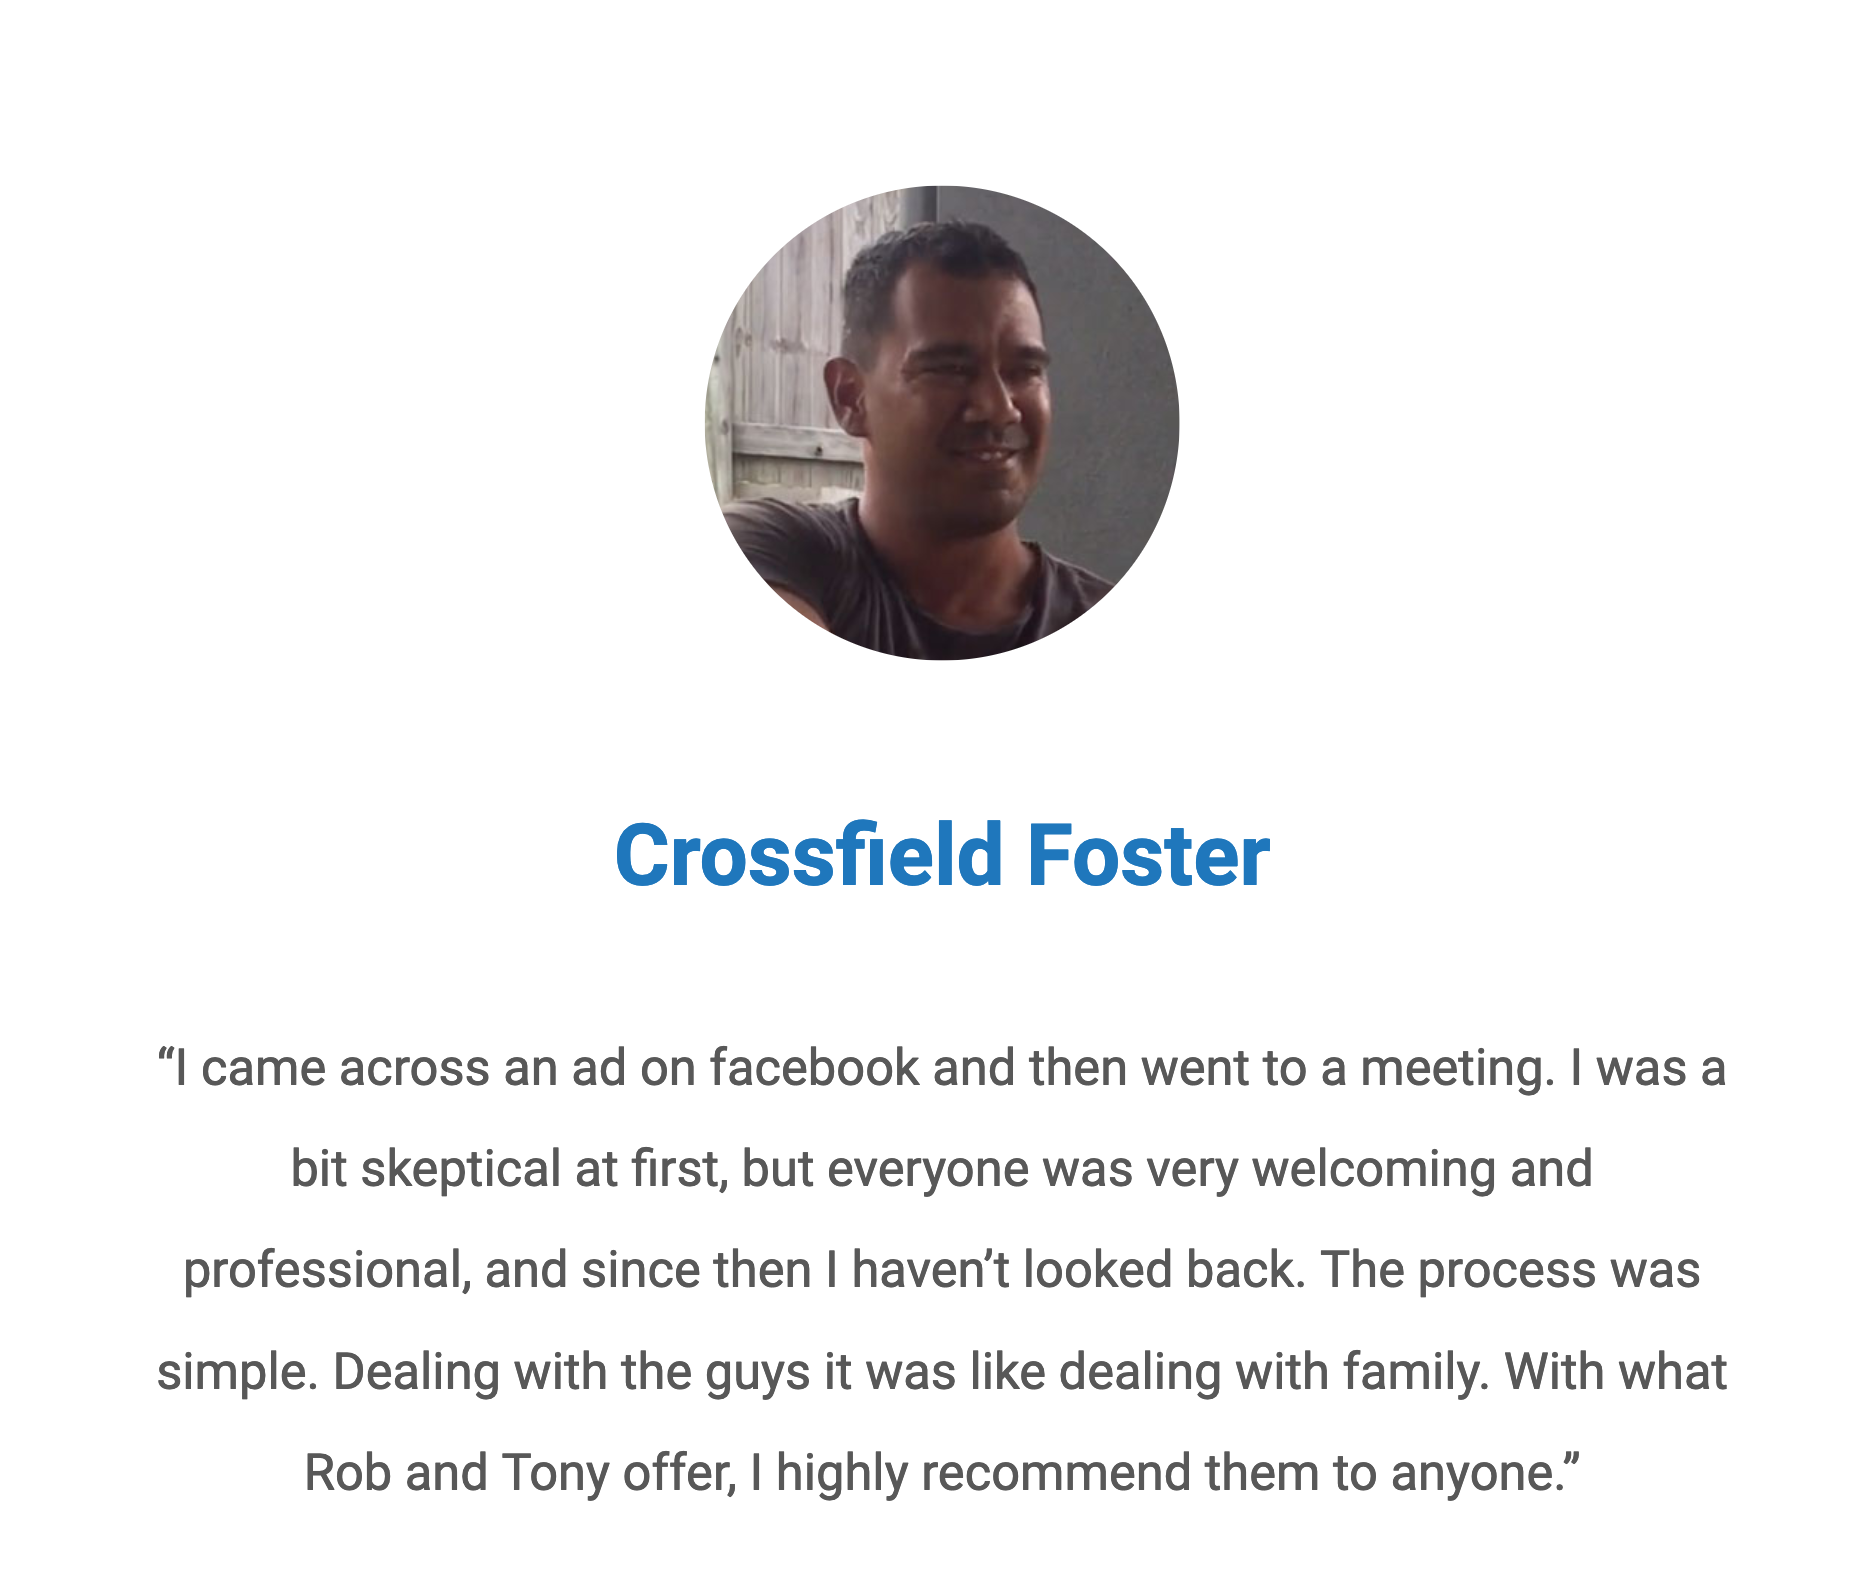 Testimony from Crossfield Foster